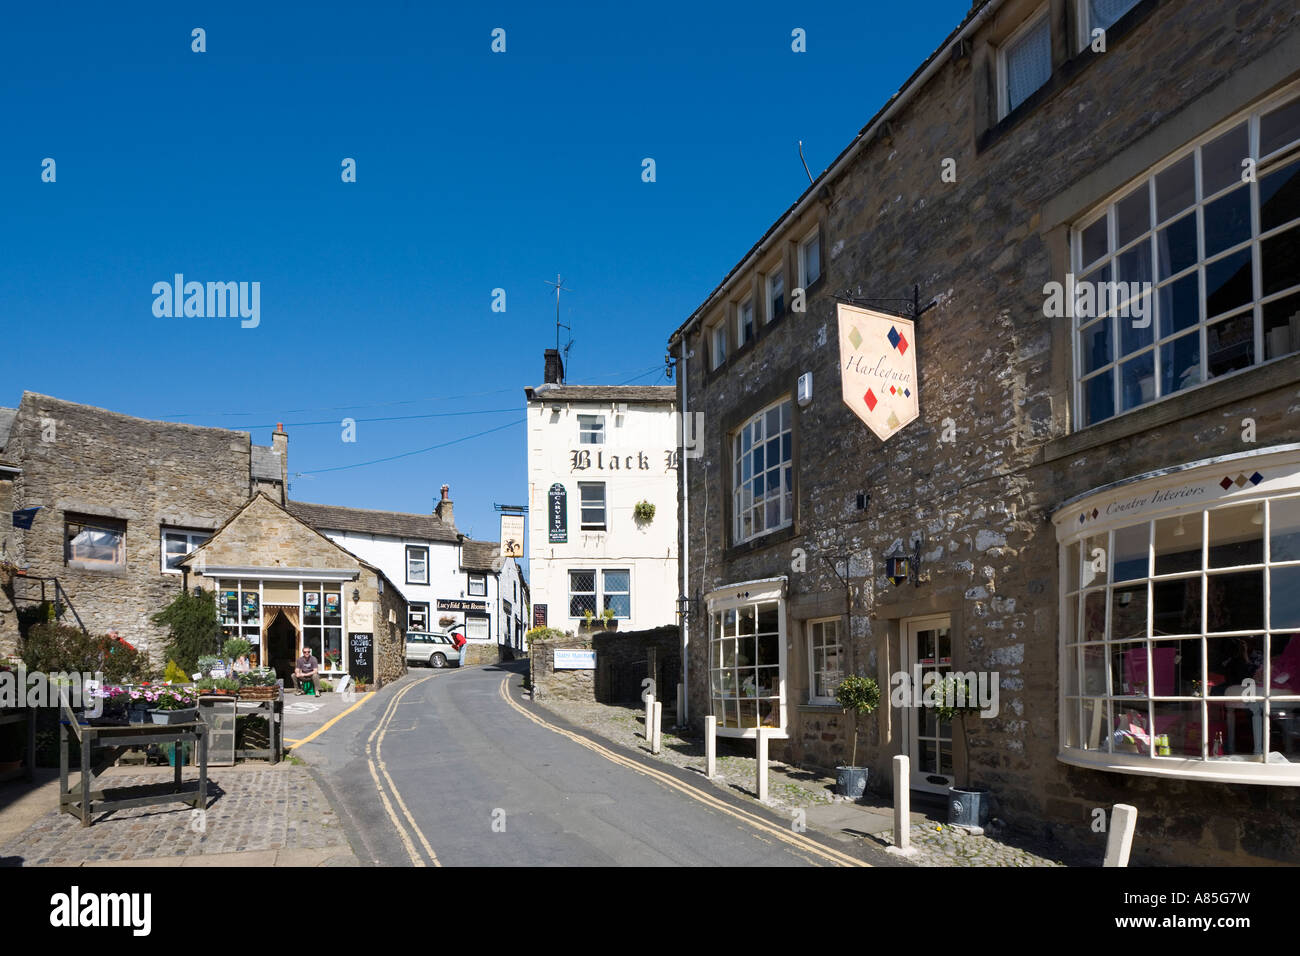 Town centre in Grassington, Wharfedale, Yorkshire Dales National Park, North Yorkshire, England, UK Stock Photo